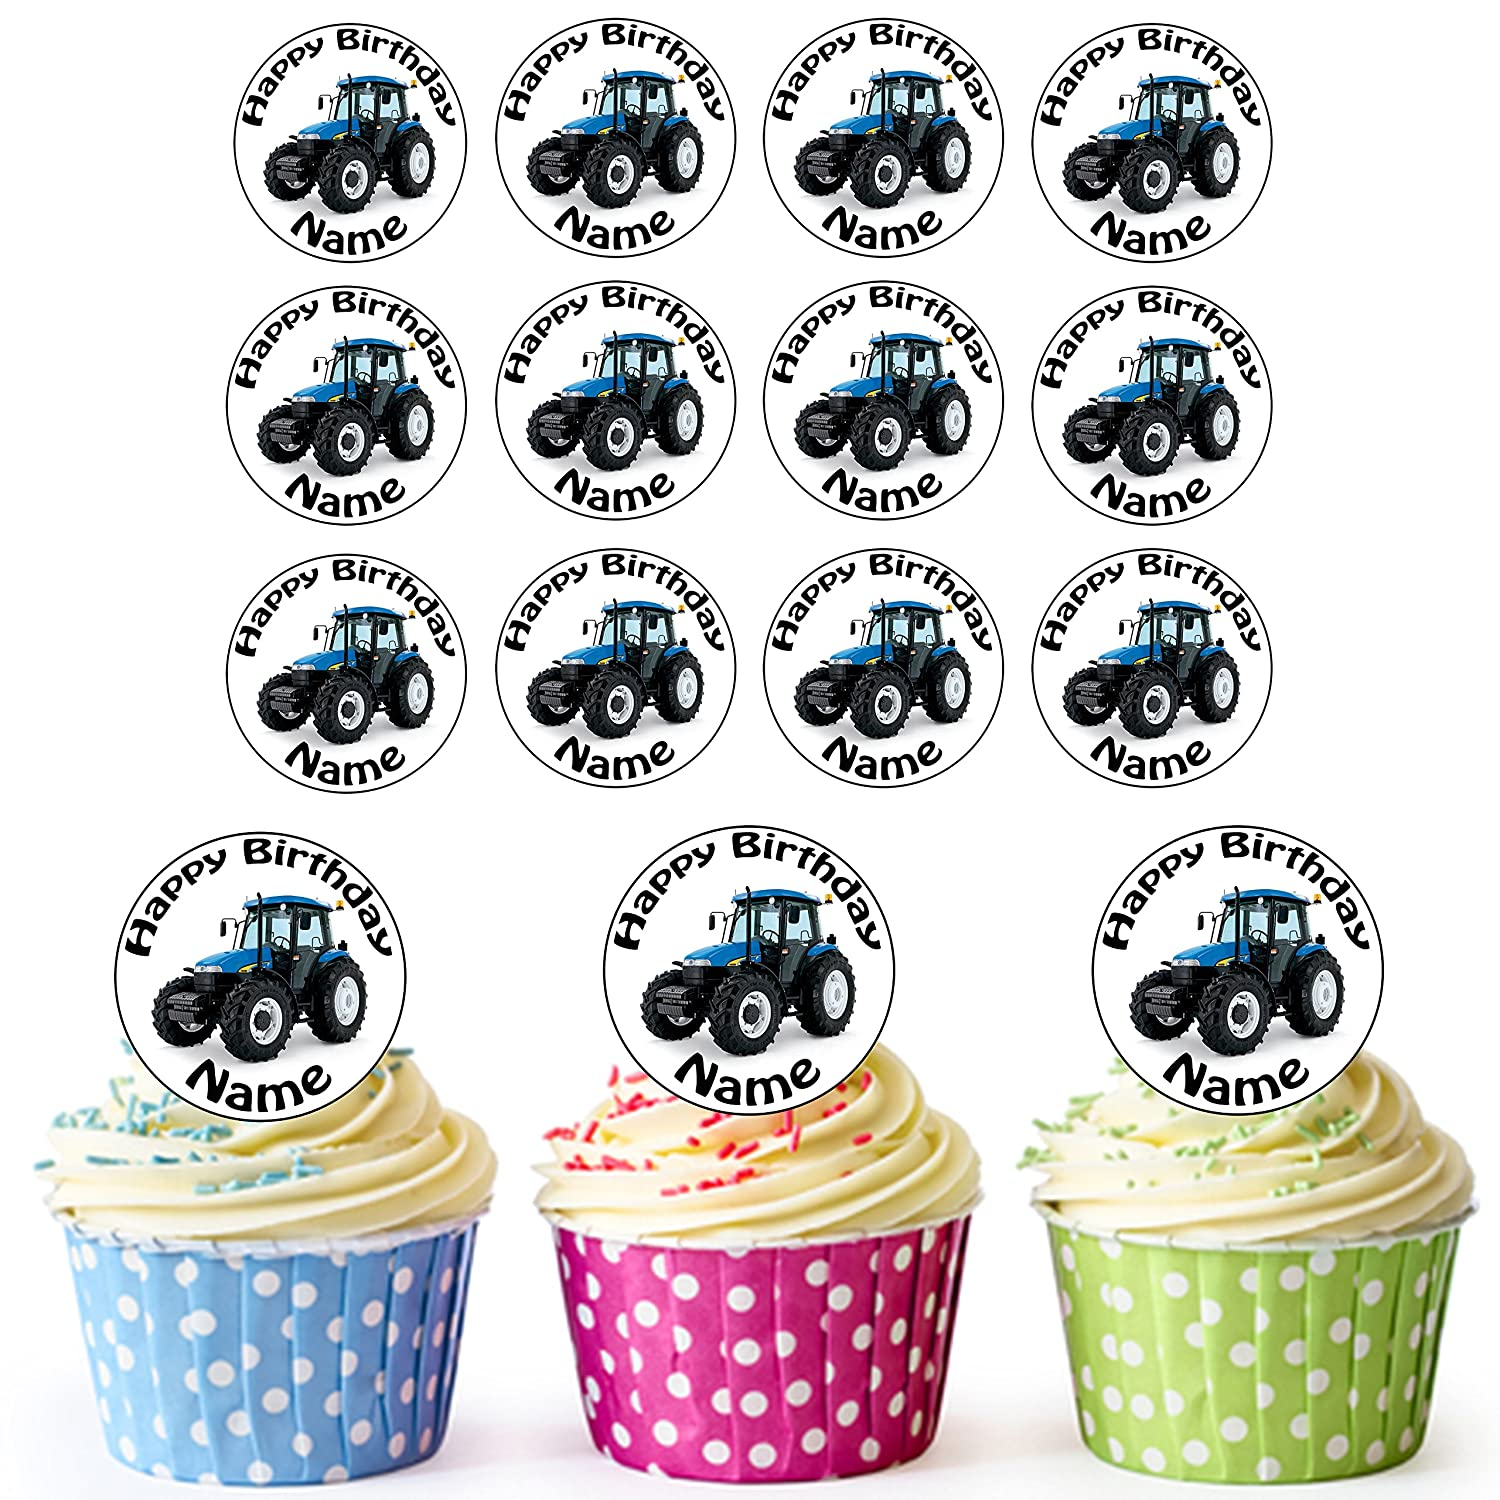 Remarkable Blue Tractor 24 Personalised Edible Cupcake Toppers Birthday Cake Personalised Birthday Cards Cominlily Jamesorg